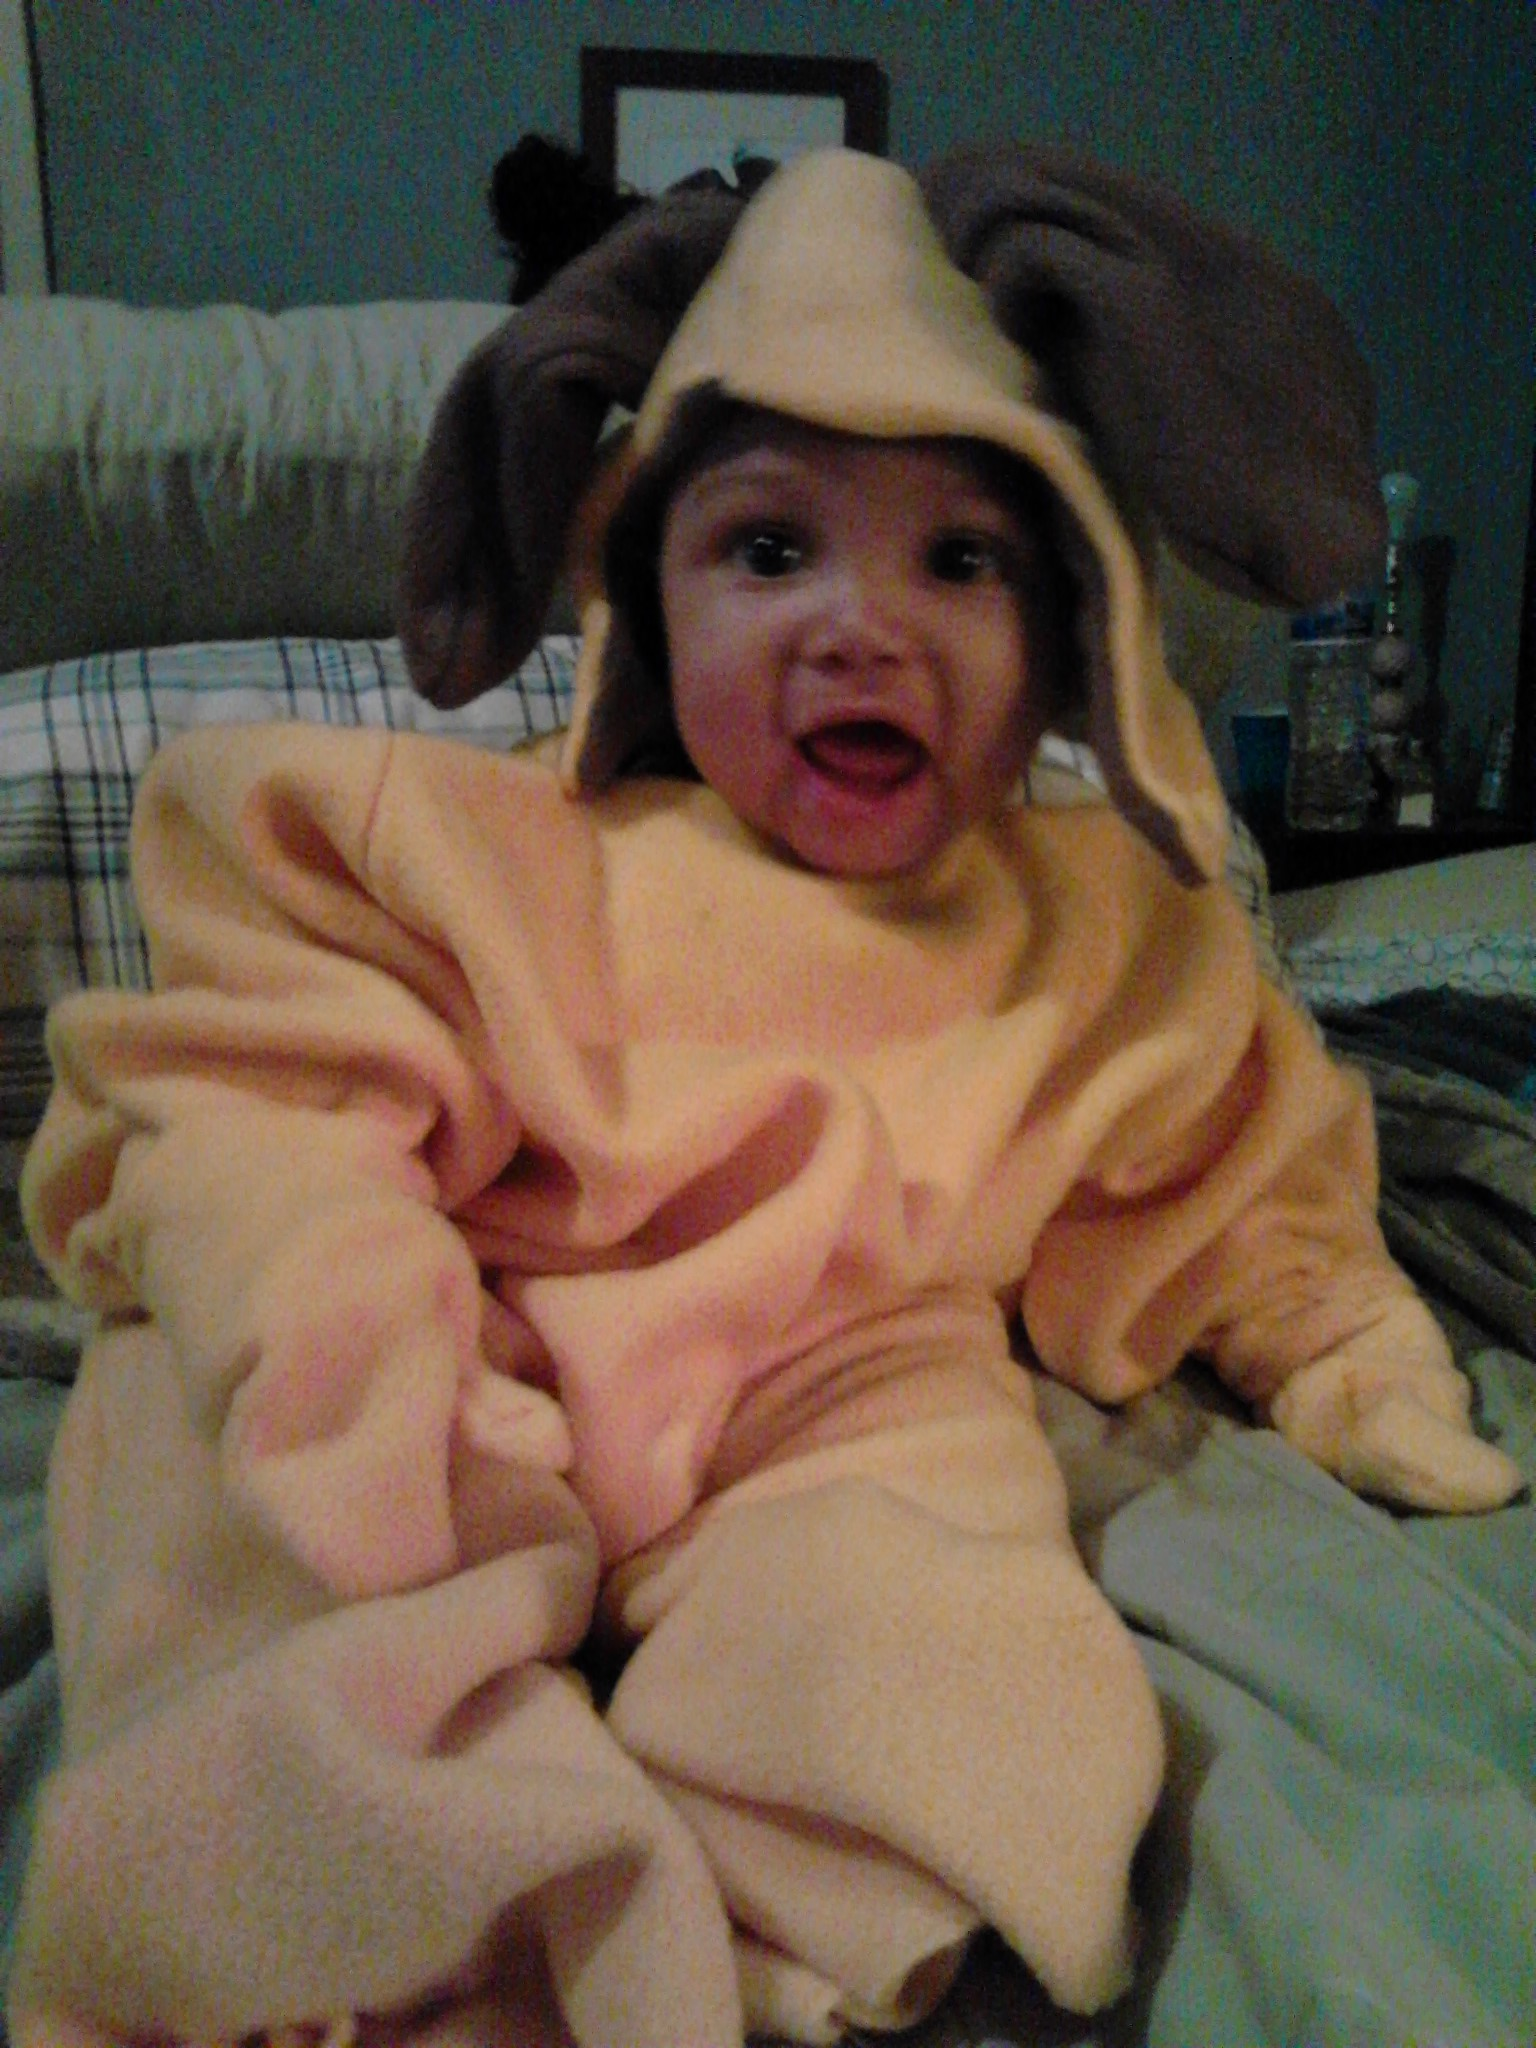 Roo from Winnie the Pooh